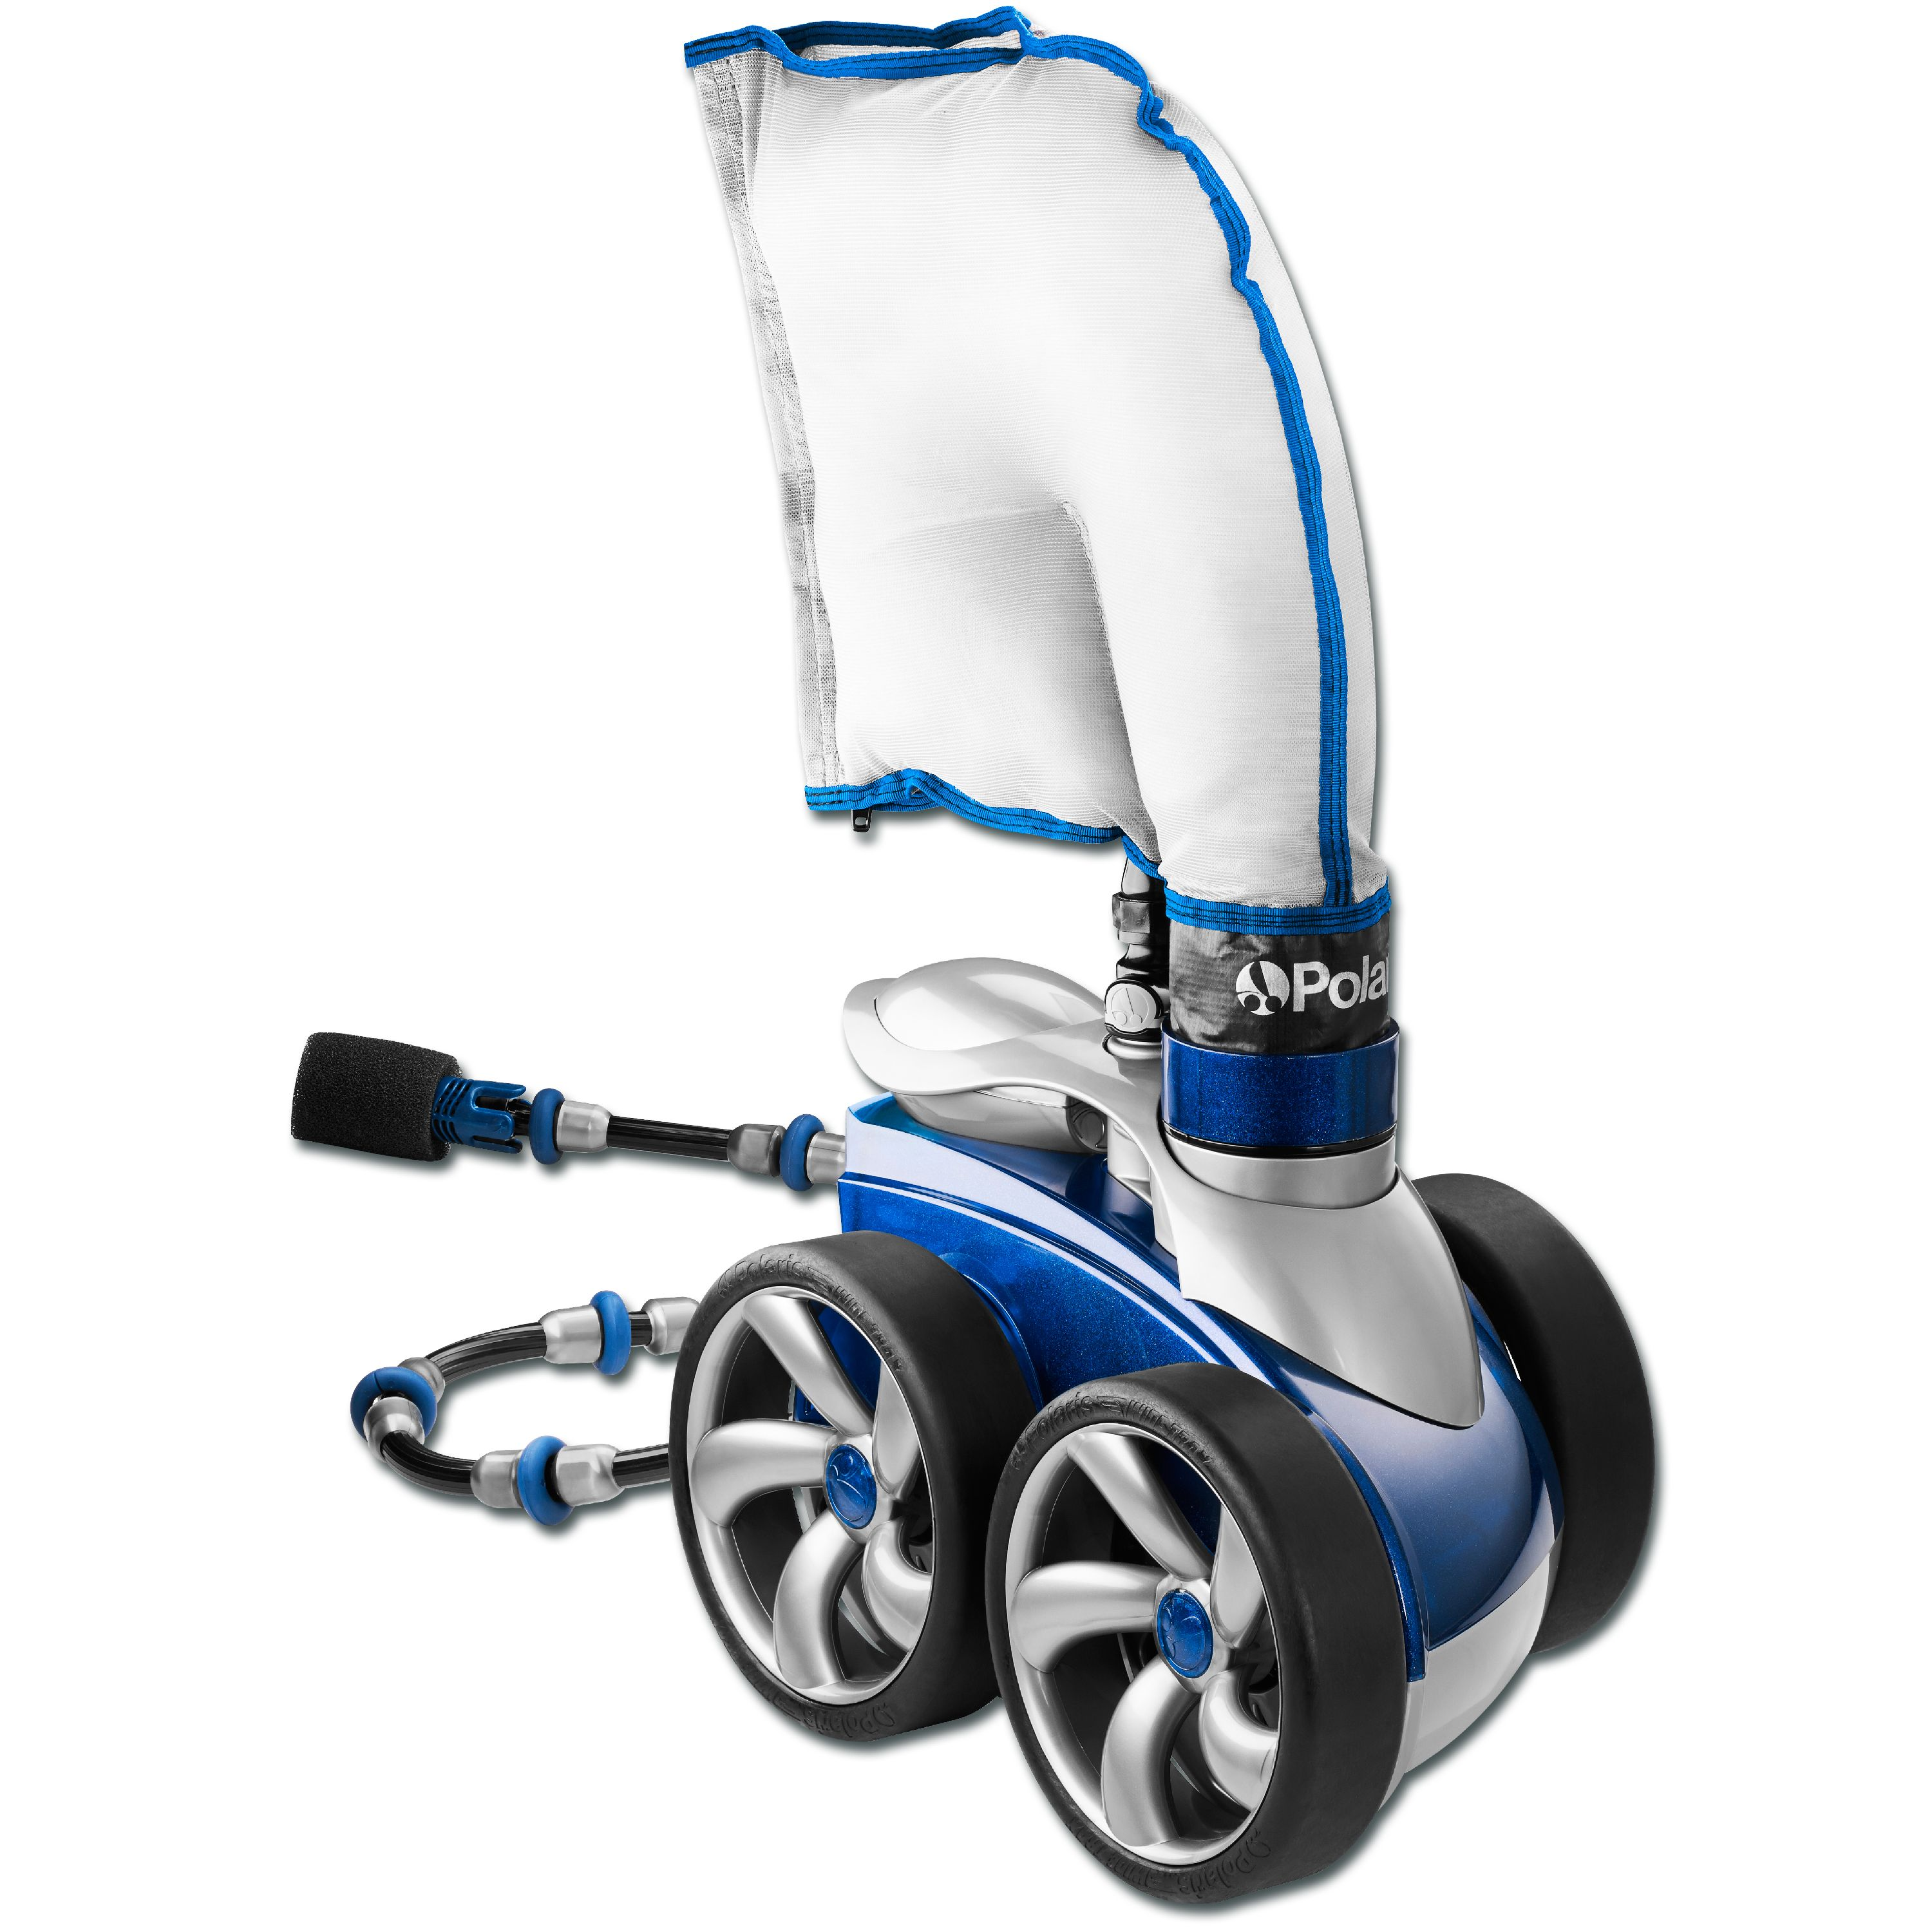 Polaris 3900 Sport Automatic Pressure Pool Cleaner - F6